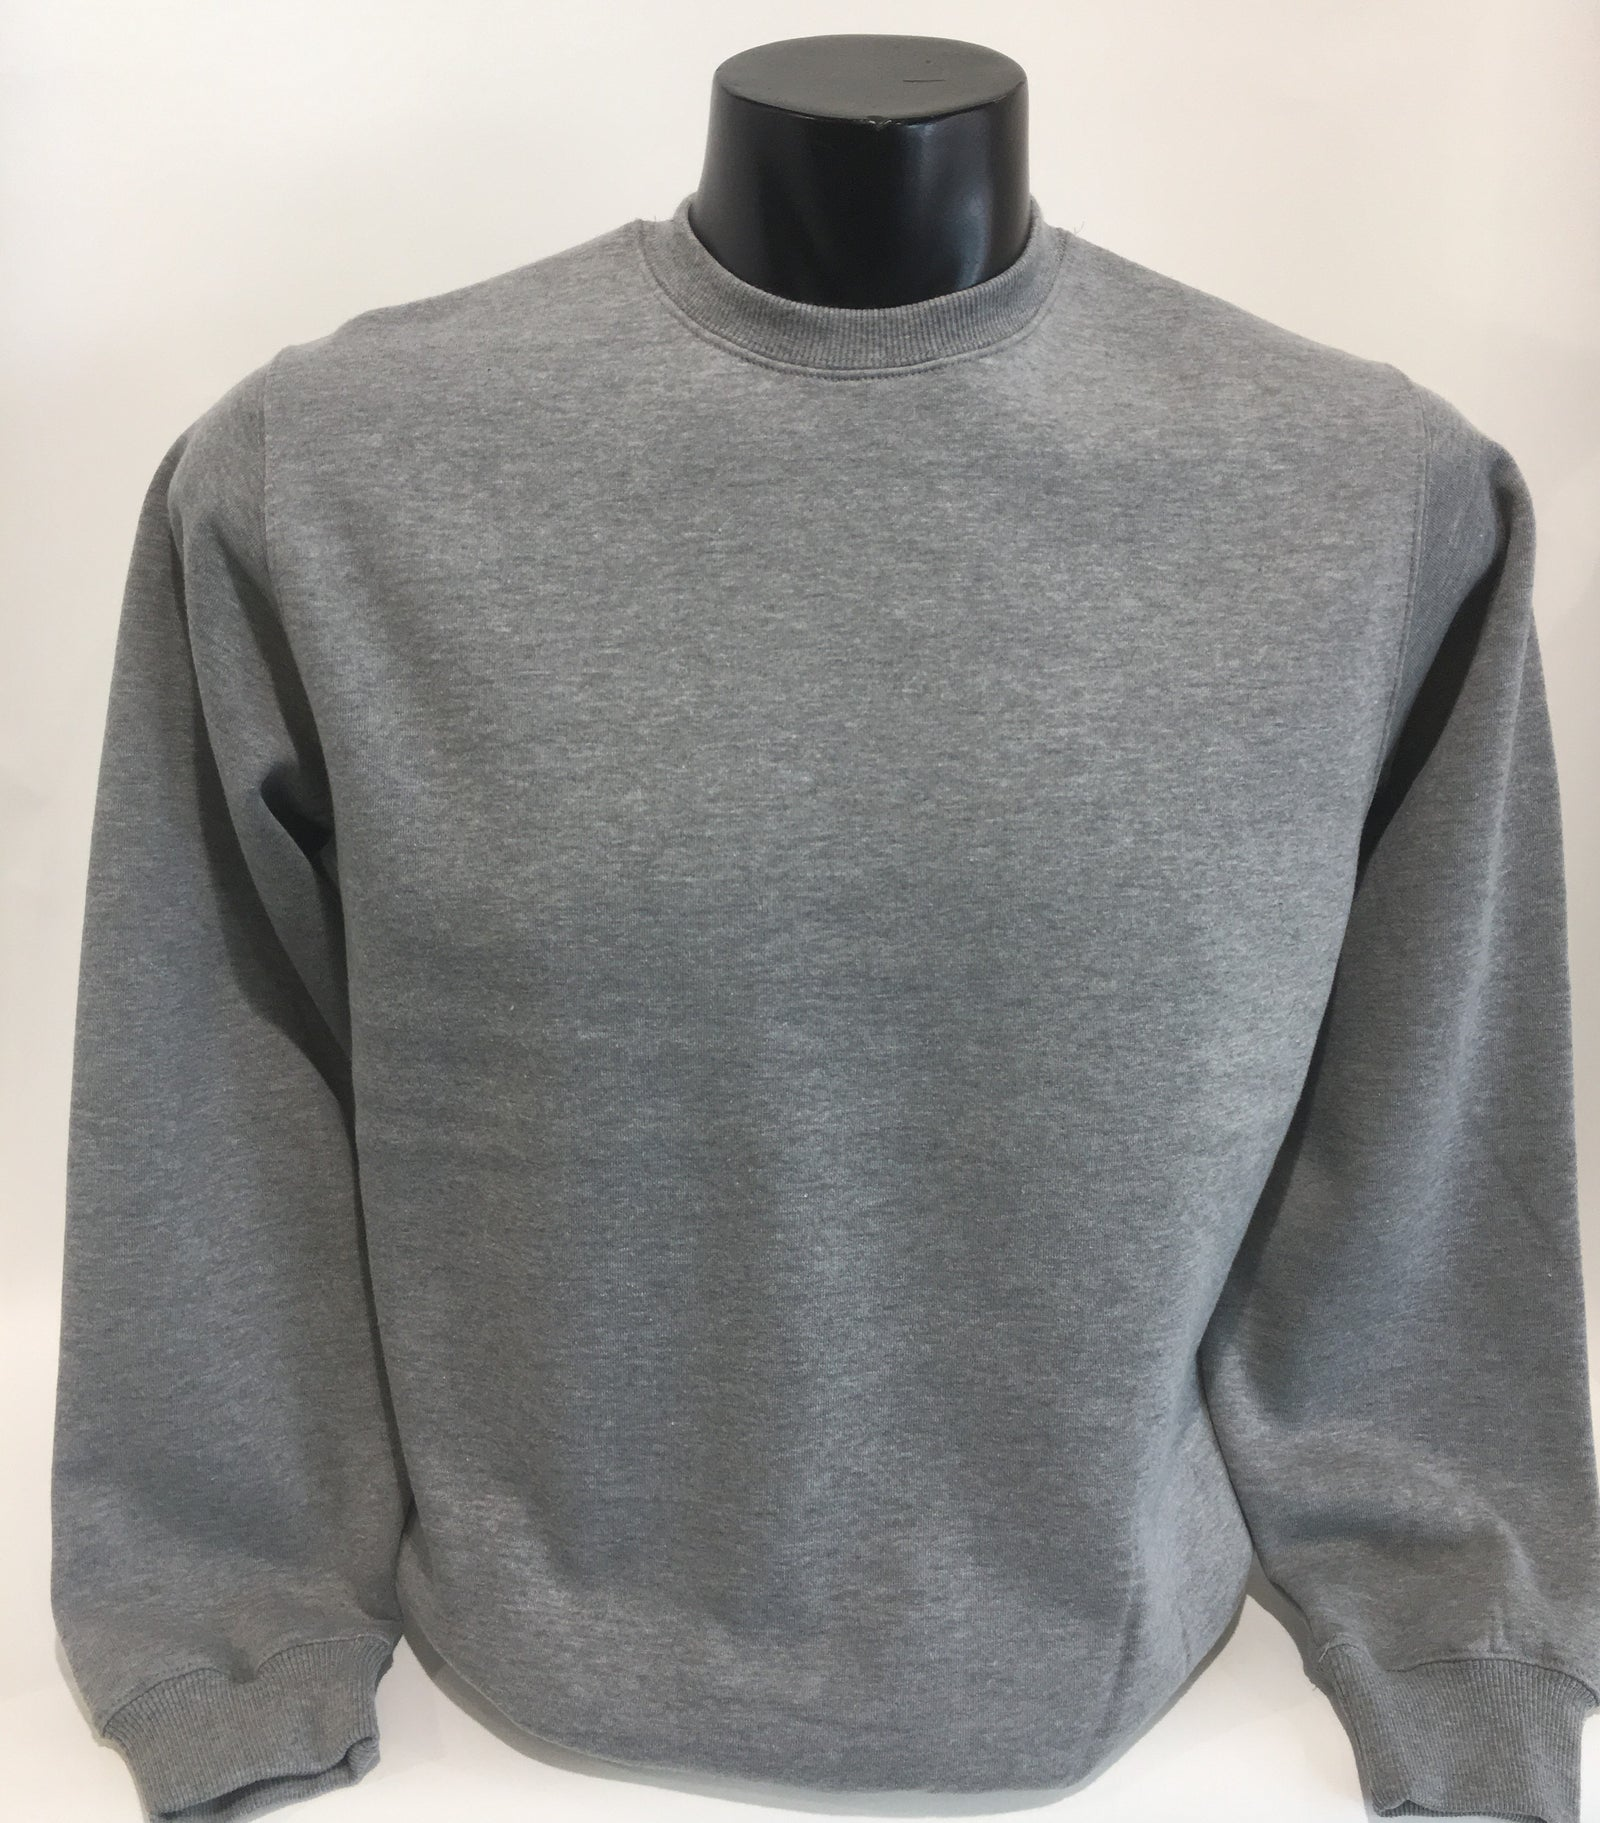 Crewneck Fleecy Sweatshirt